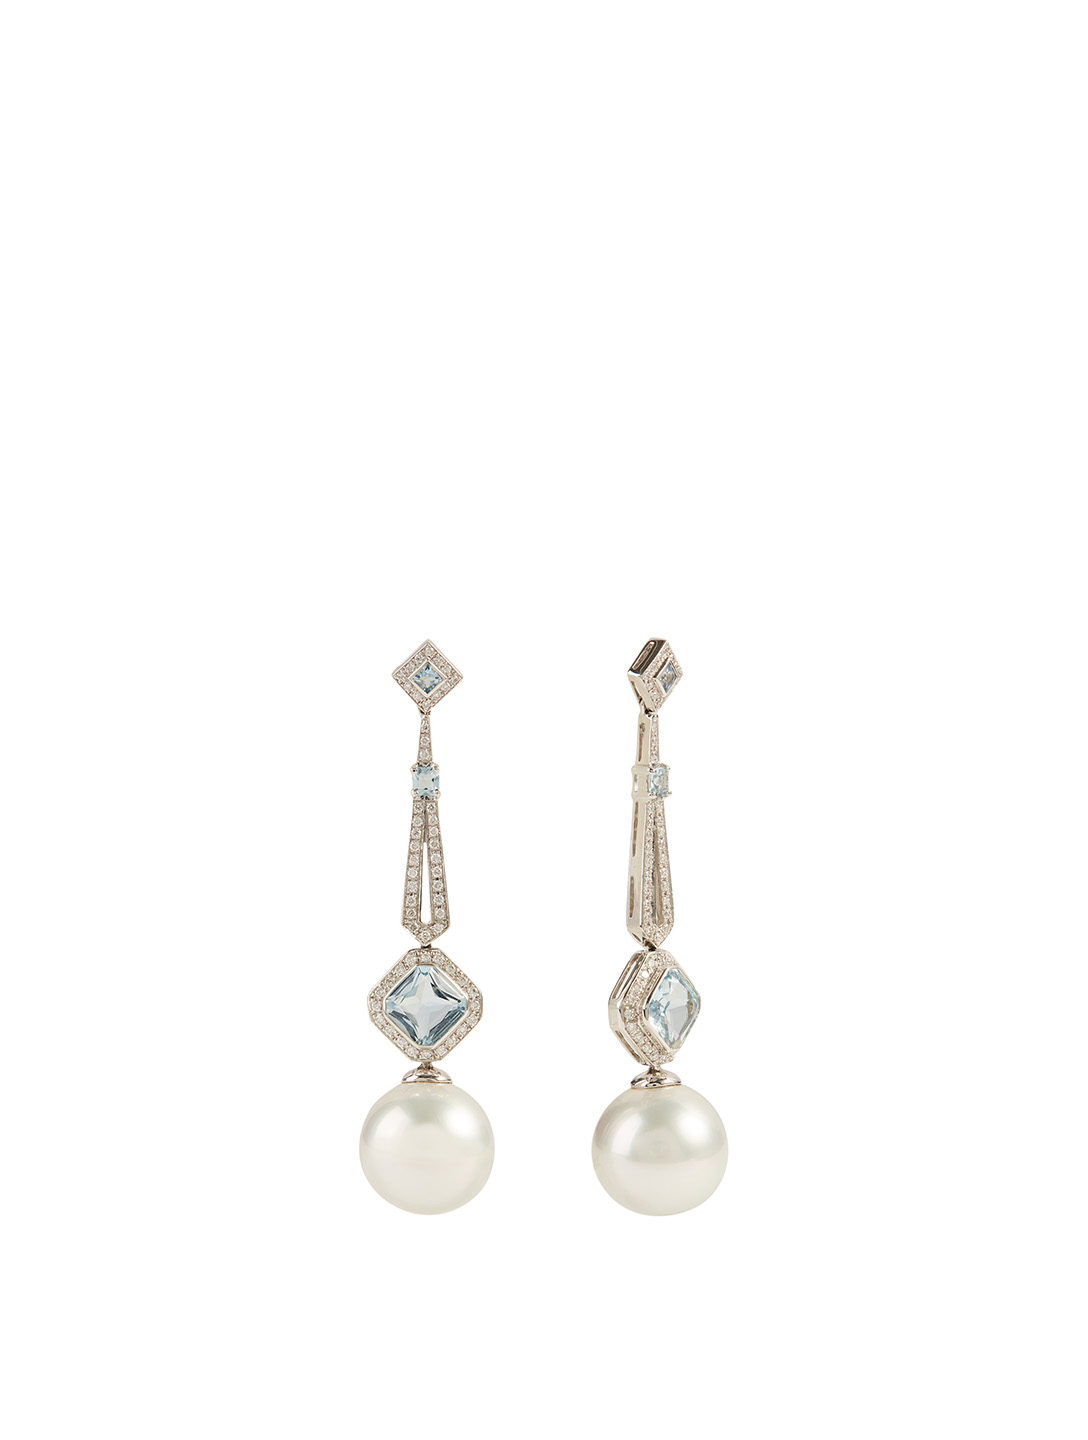 YOKO LONDON 18K White Gold Australian South Sea Pearl And Aquamarine Earrings With Diamonds Women's Metallic